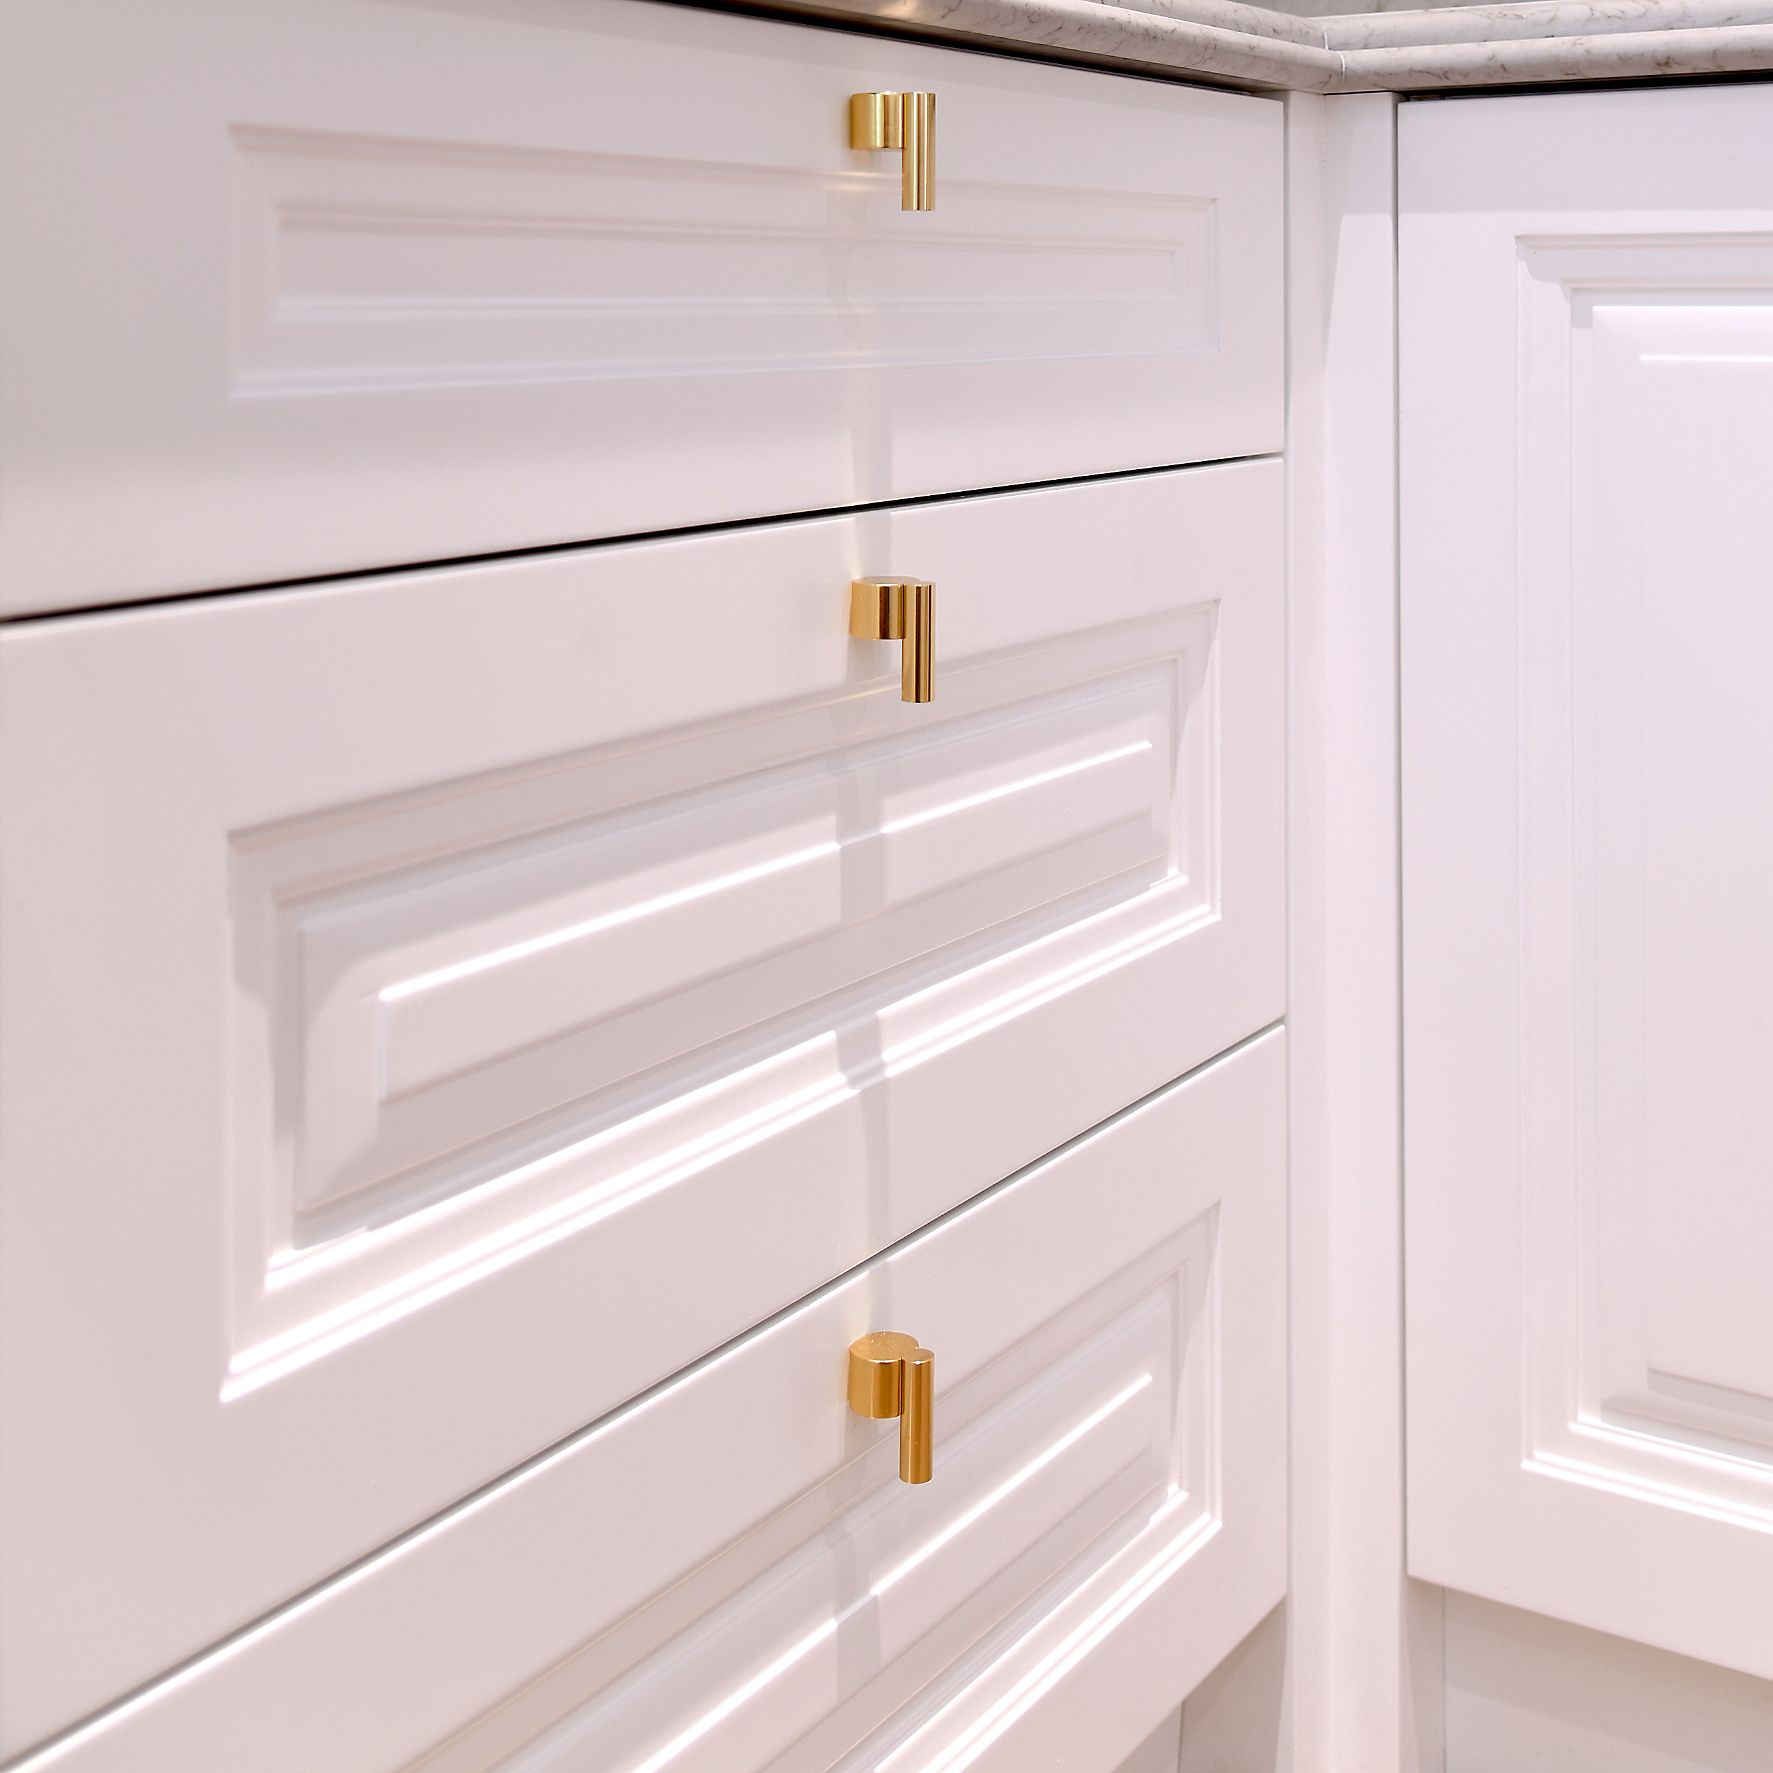 Victory Heights kitchen drawers